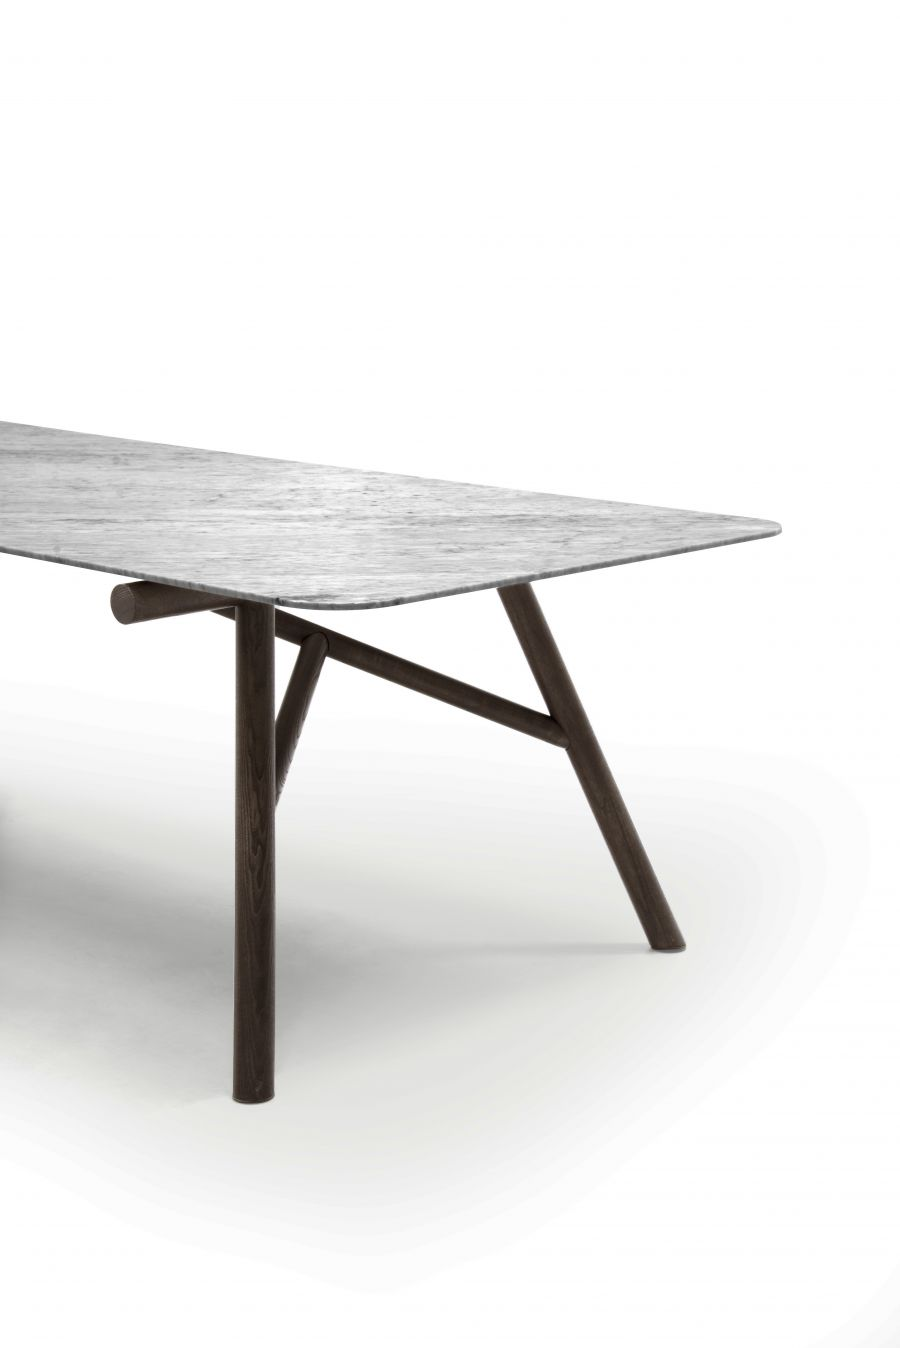 maestro table for pianca 2018